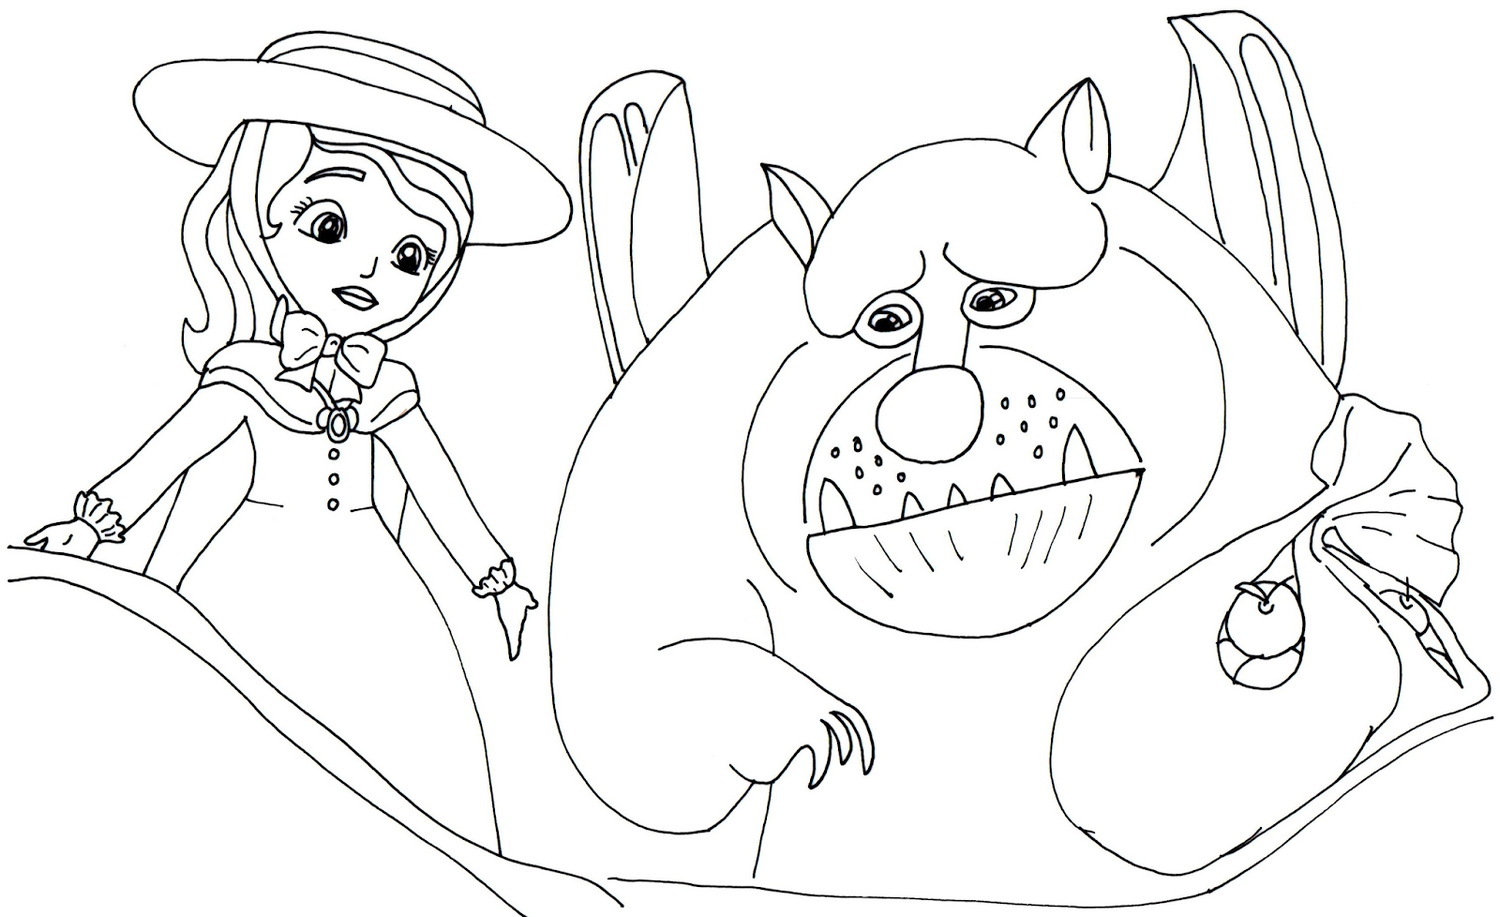 Sofia-the-first-coloring-picture-